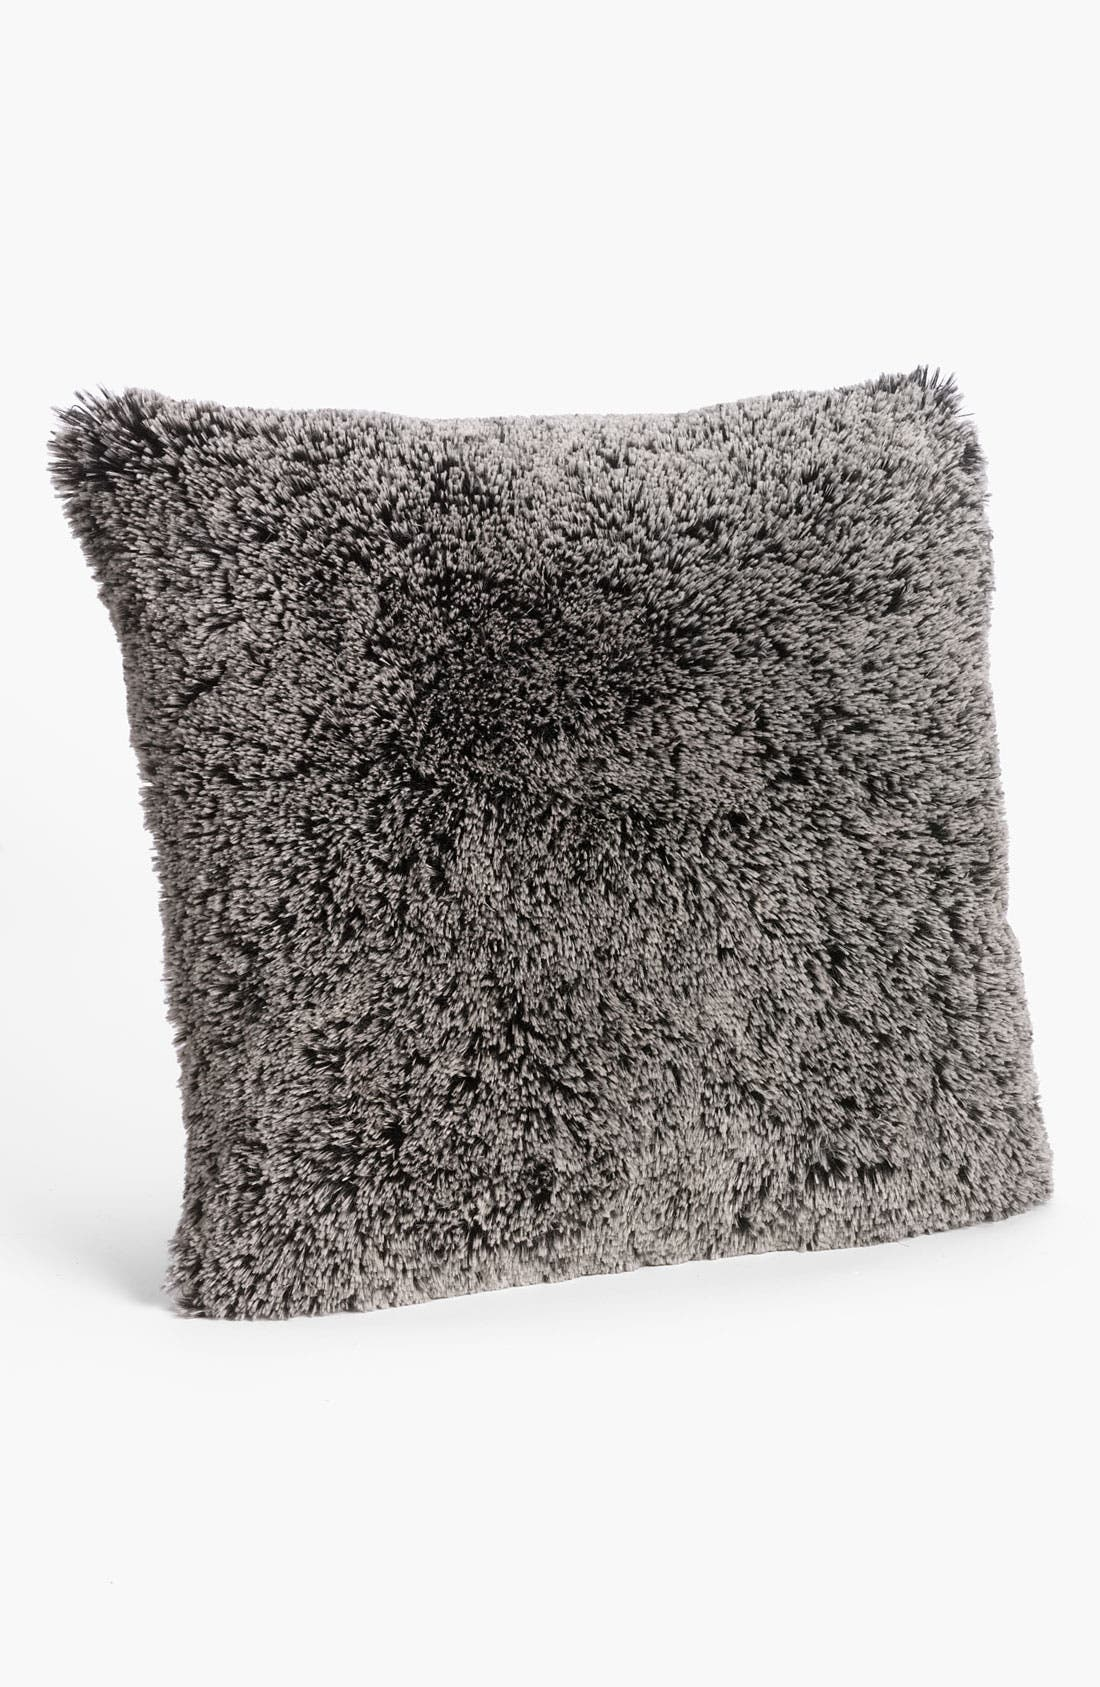 Main Image - Brentwood Originals Tipped Faux Fur Pillow